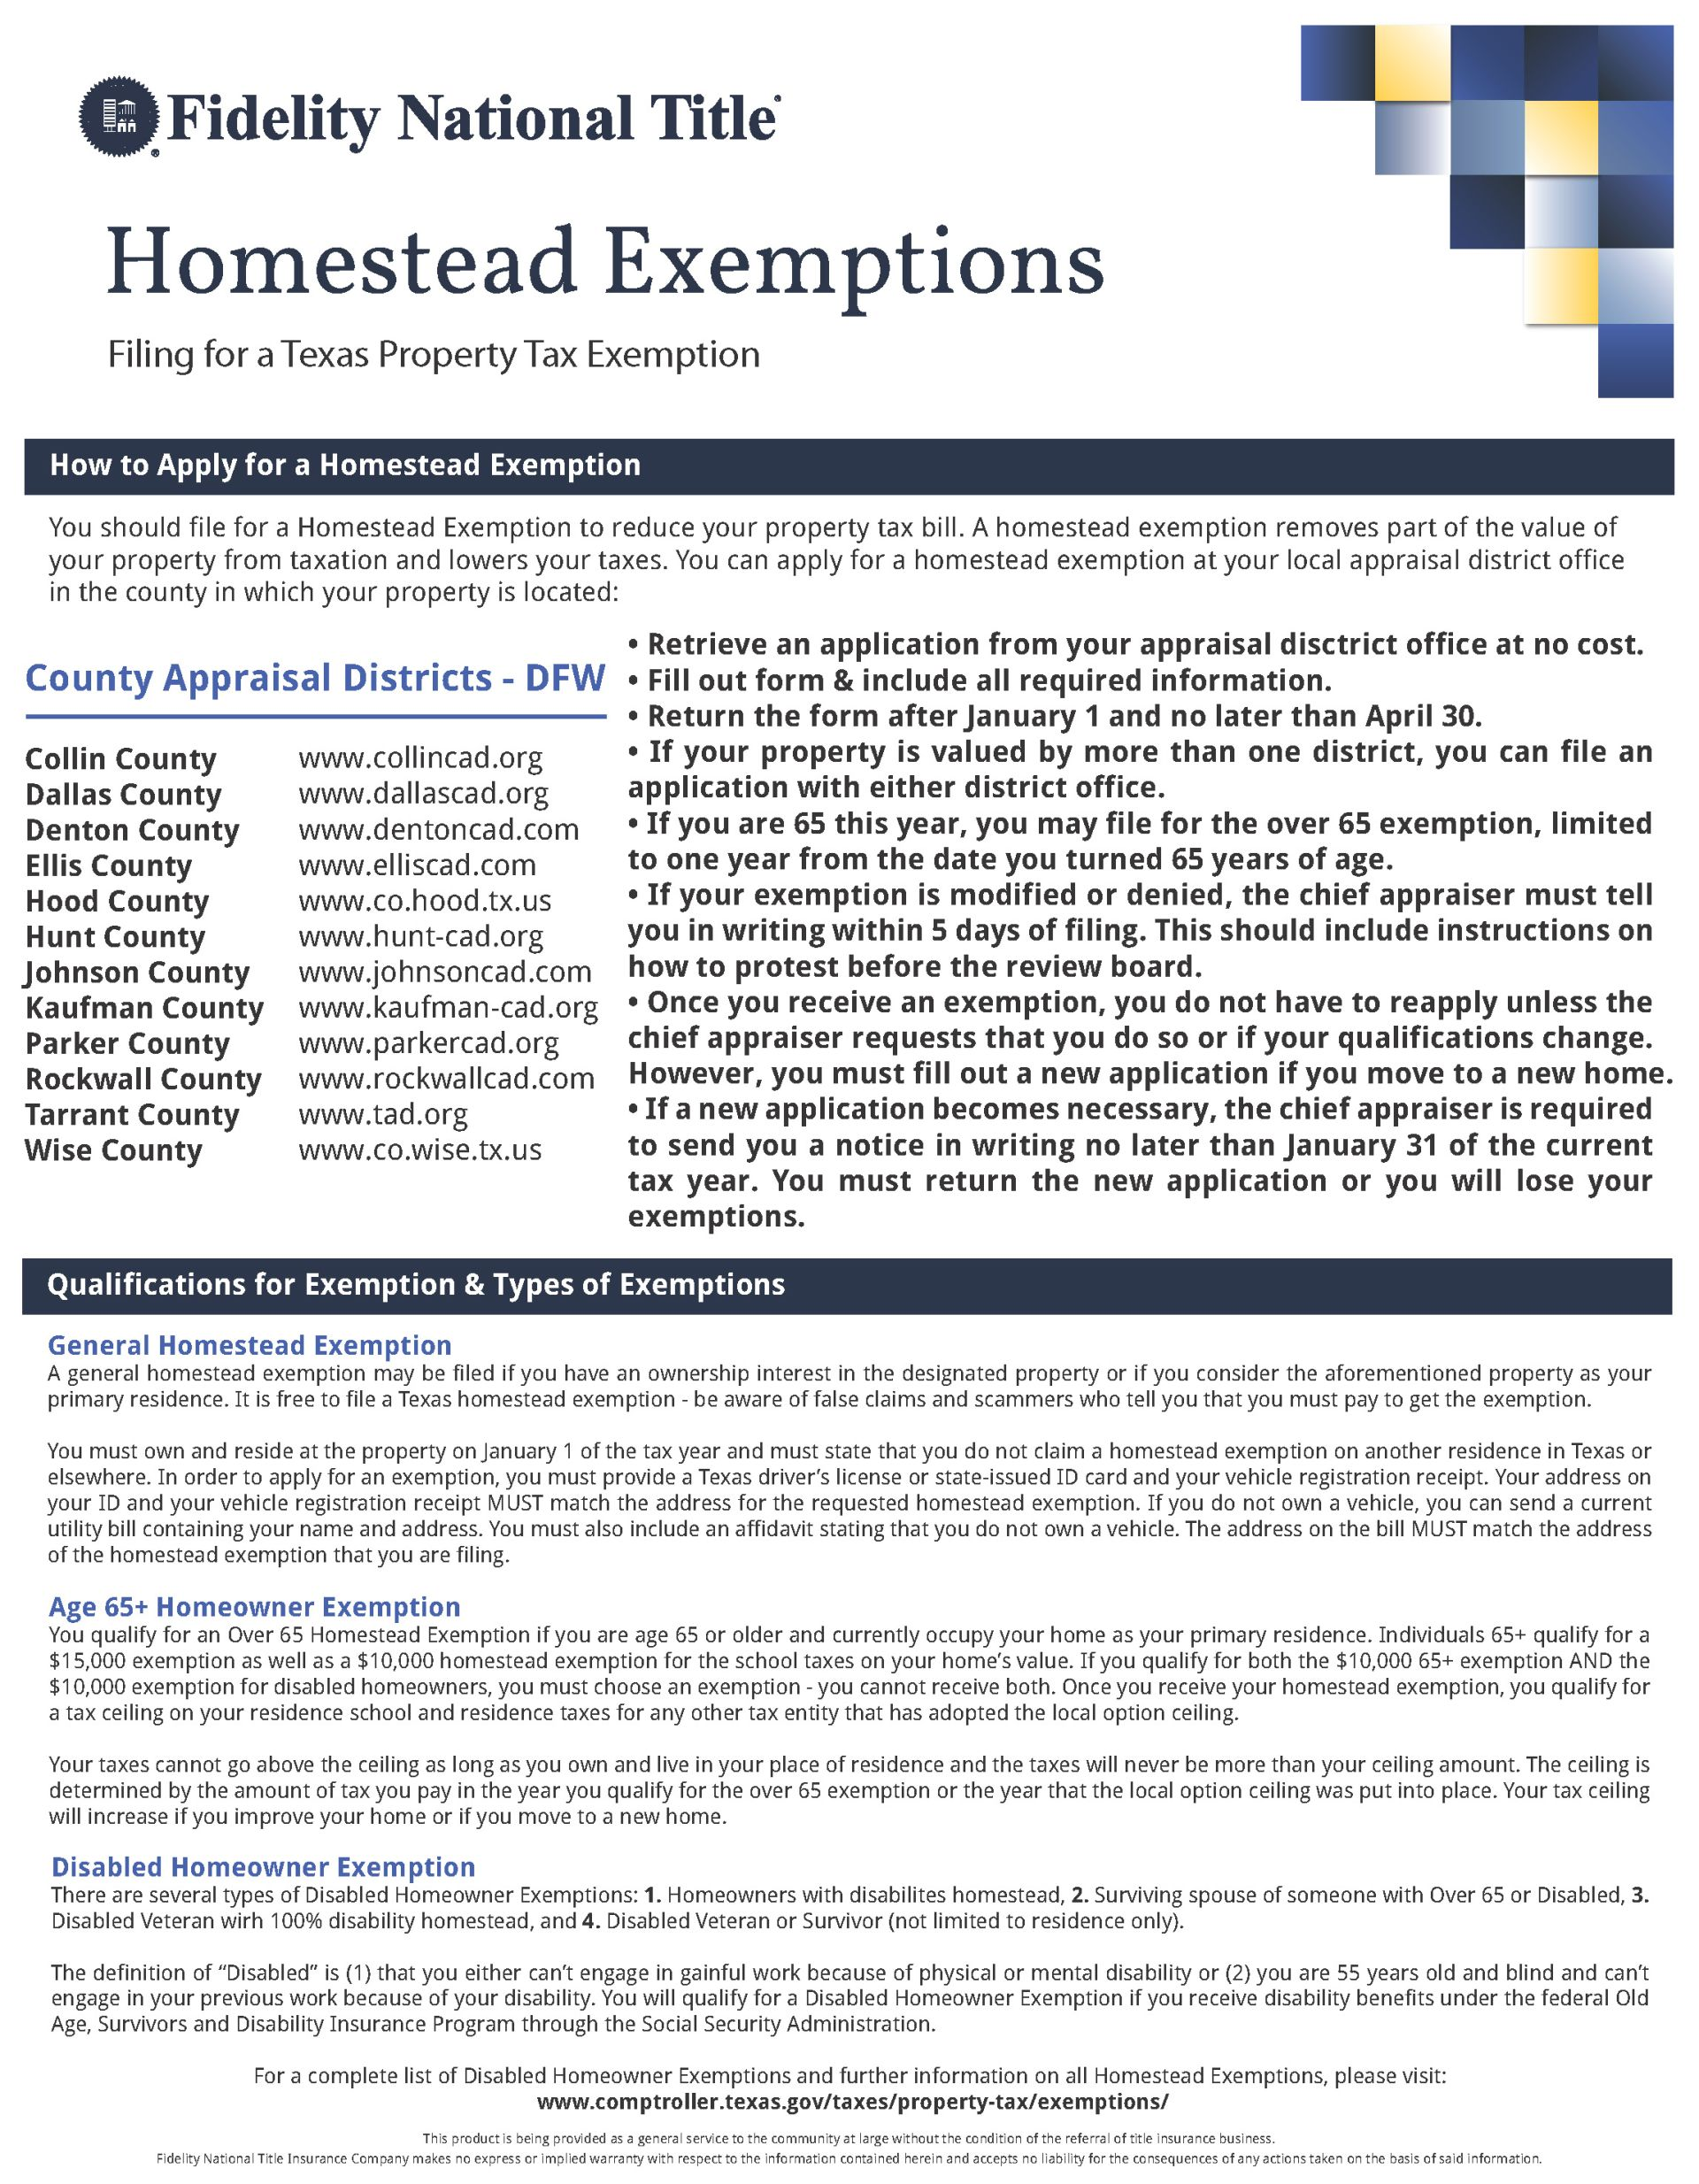 Did you file your Homestead Exemption?